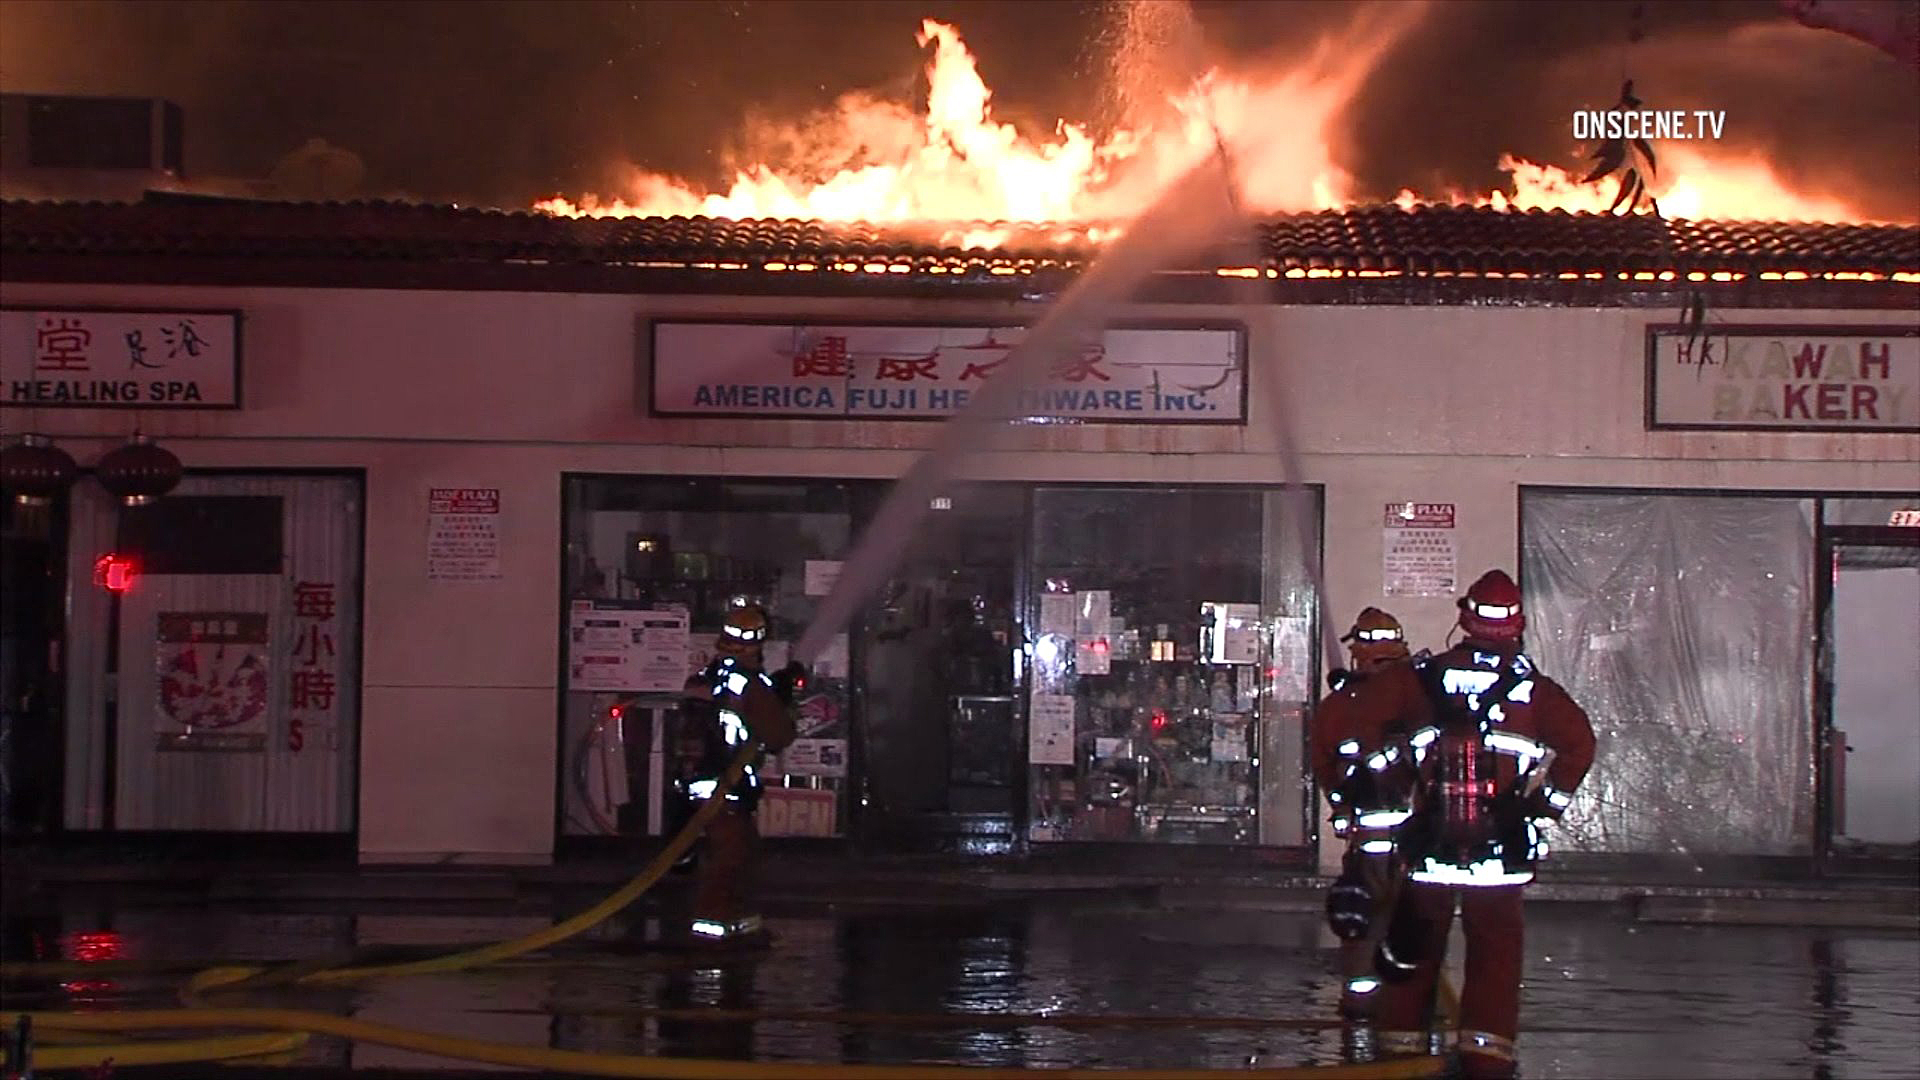 Firefighters battle a blaze at a strip mall in Monterey Park on Dec. 15, 2016. (Credit: OnScene.TV)